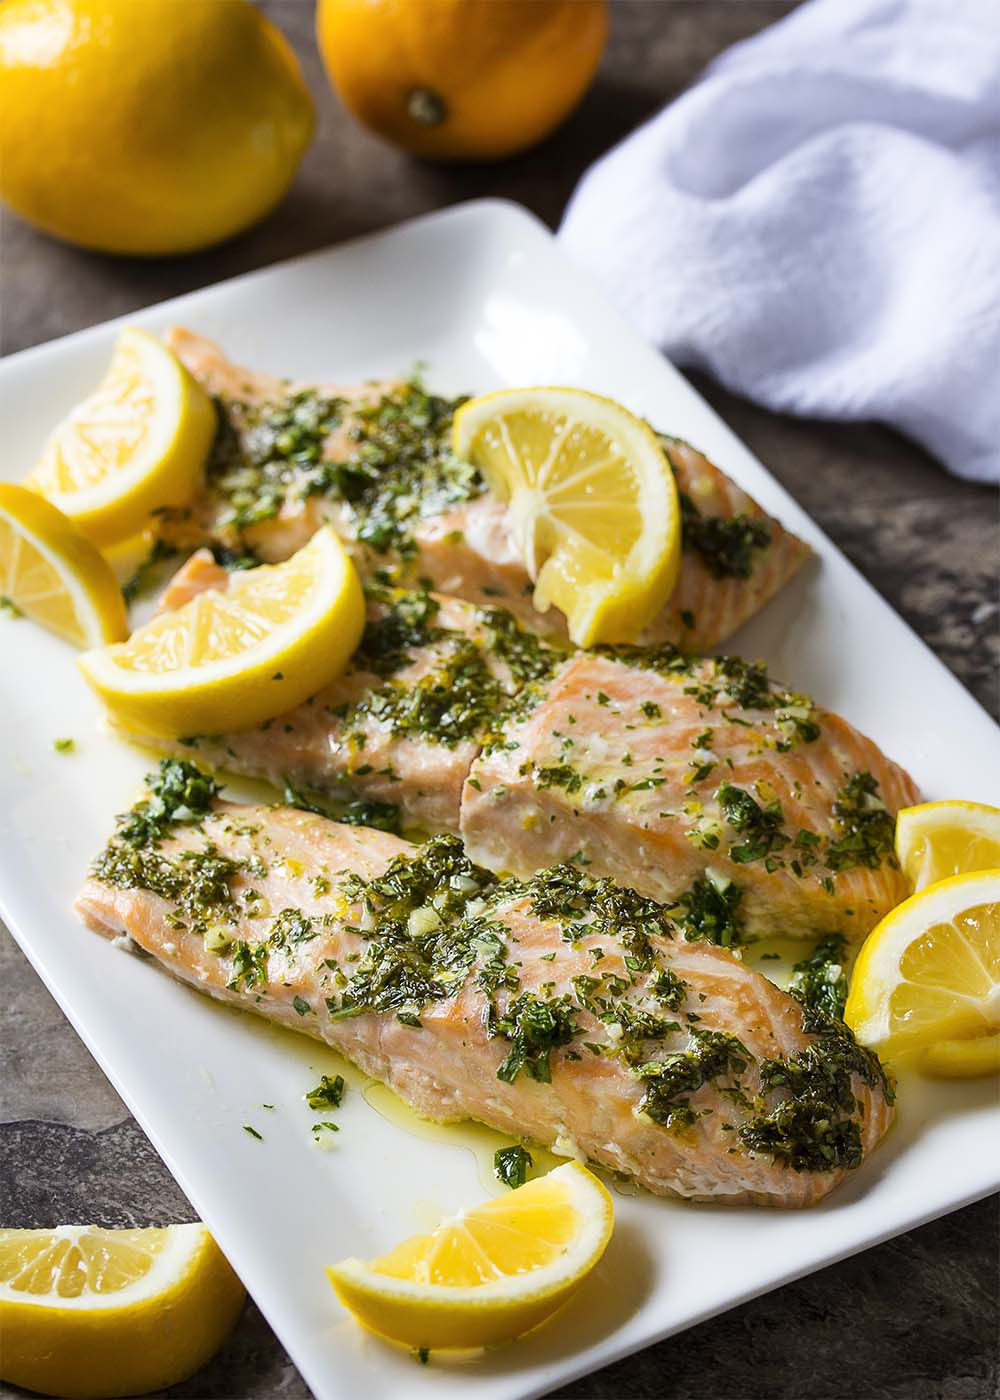 A plate of slow roasted salmon fillets topped with a lemon herb sauce and lemon slices.